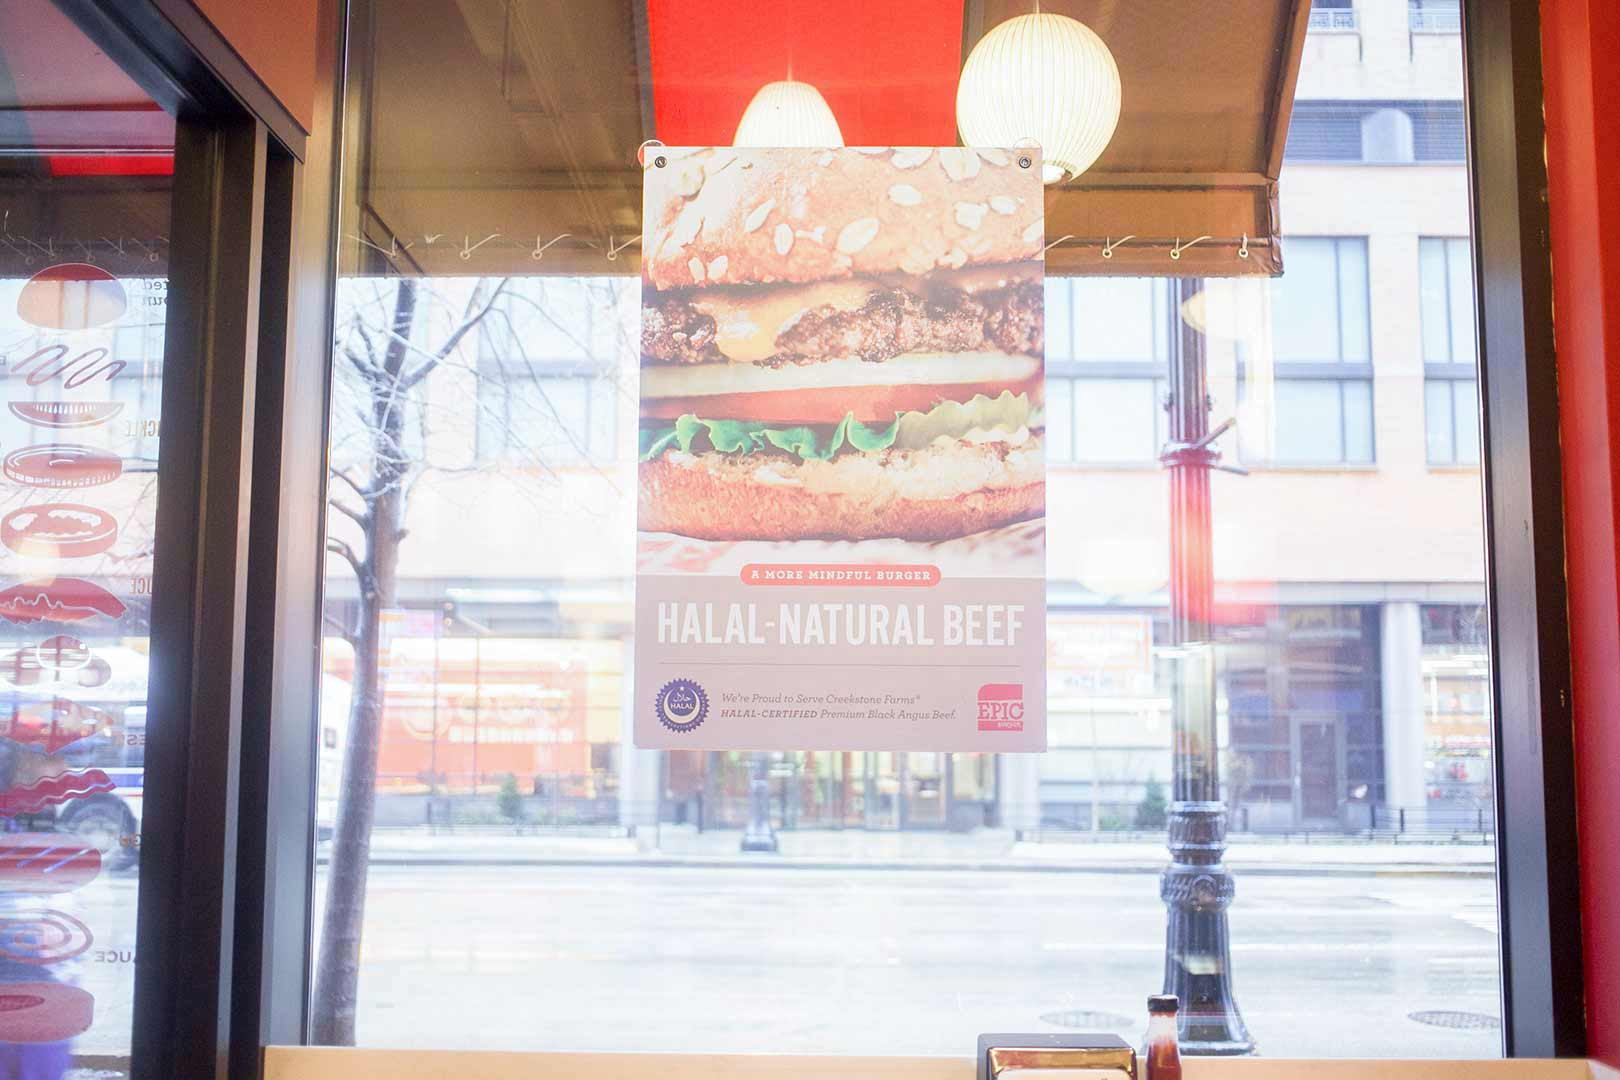 epic_burger_halal_friendly_04_poster